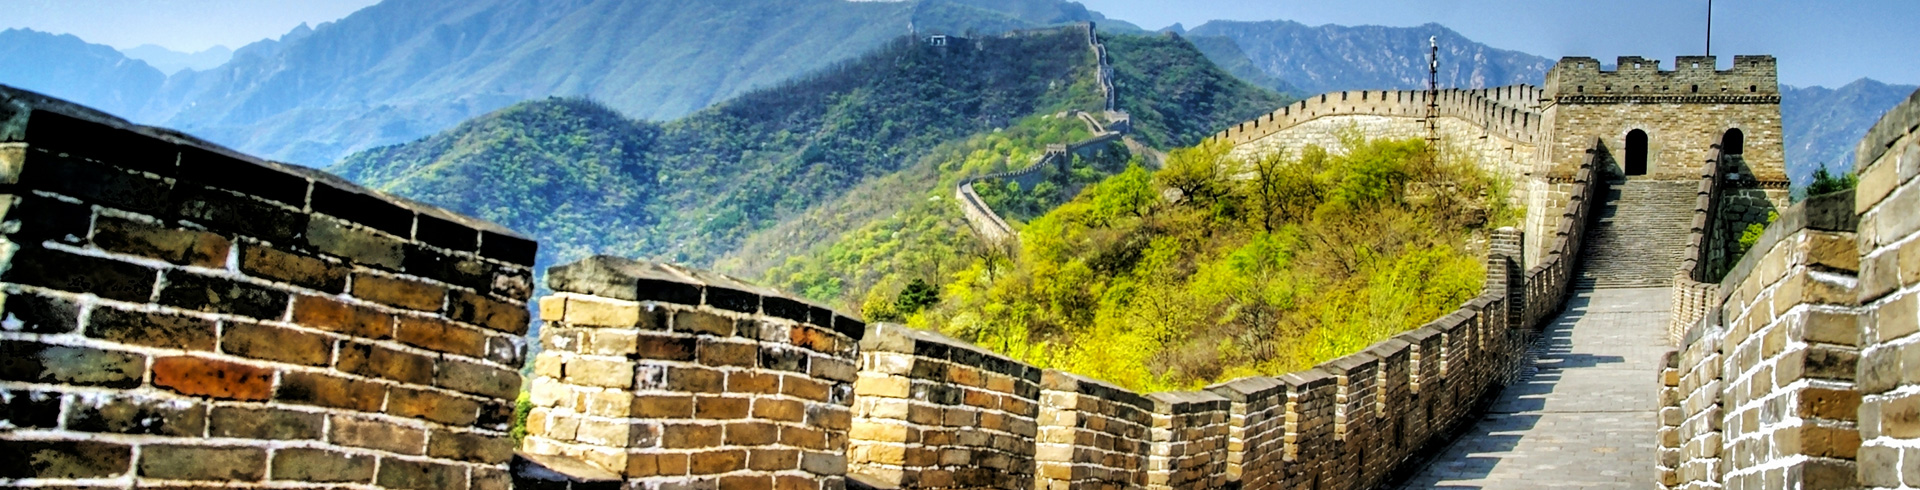 Discounted flight tickets to Beijing - IFlyFirstClass